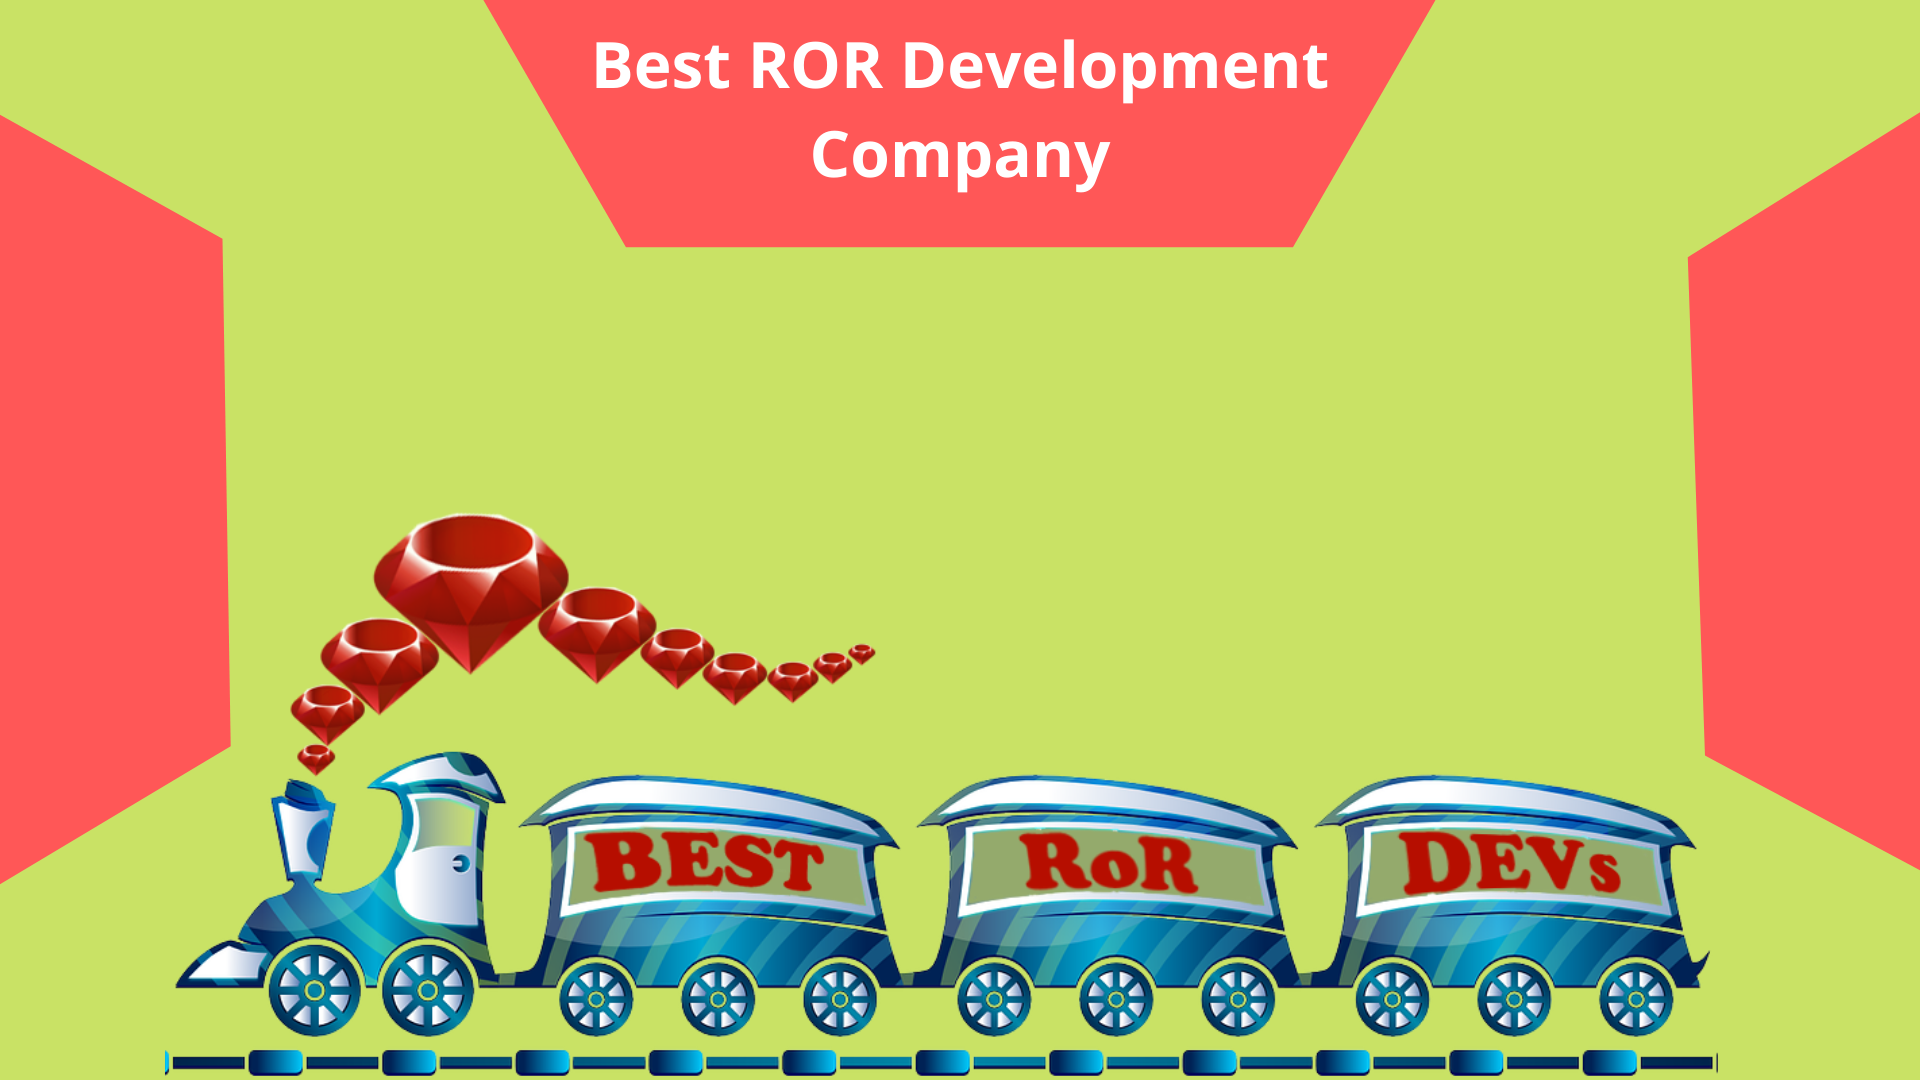 ROR Development Company